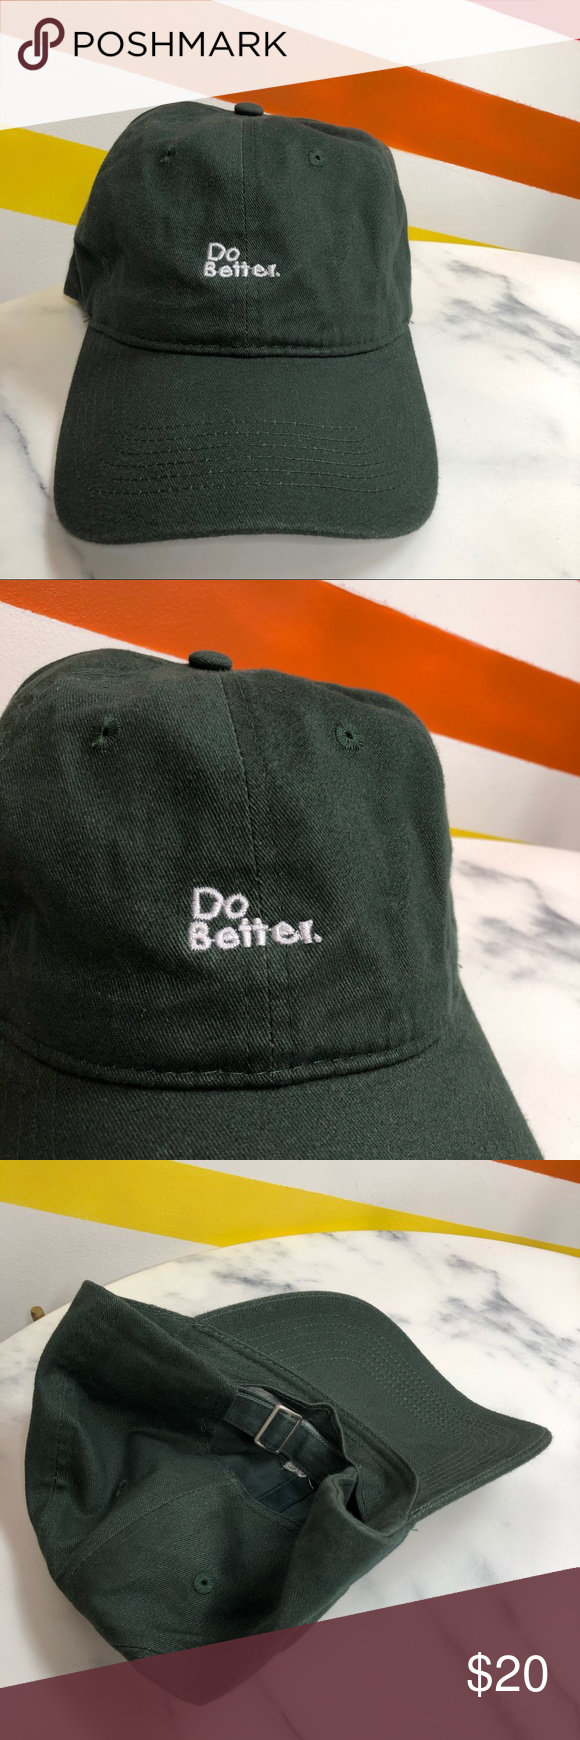 New Urban Outfitters Do Better Embroidered Hat Urban Outfitters Accessories Urban Outfitters Embroider Hat